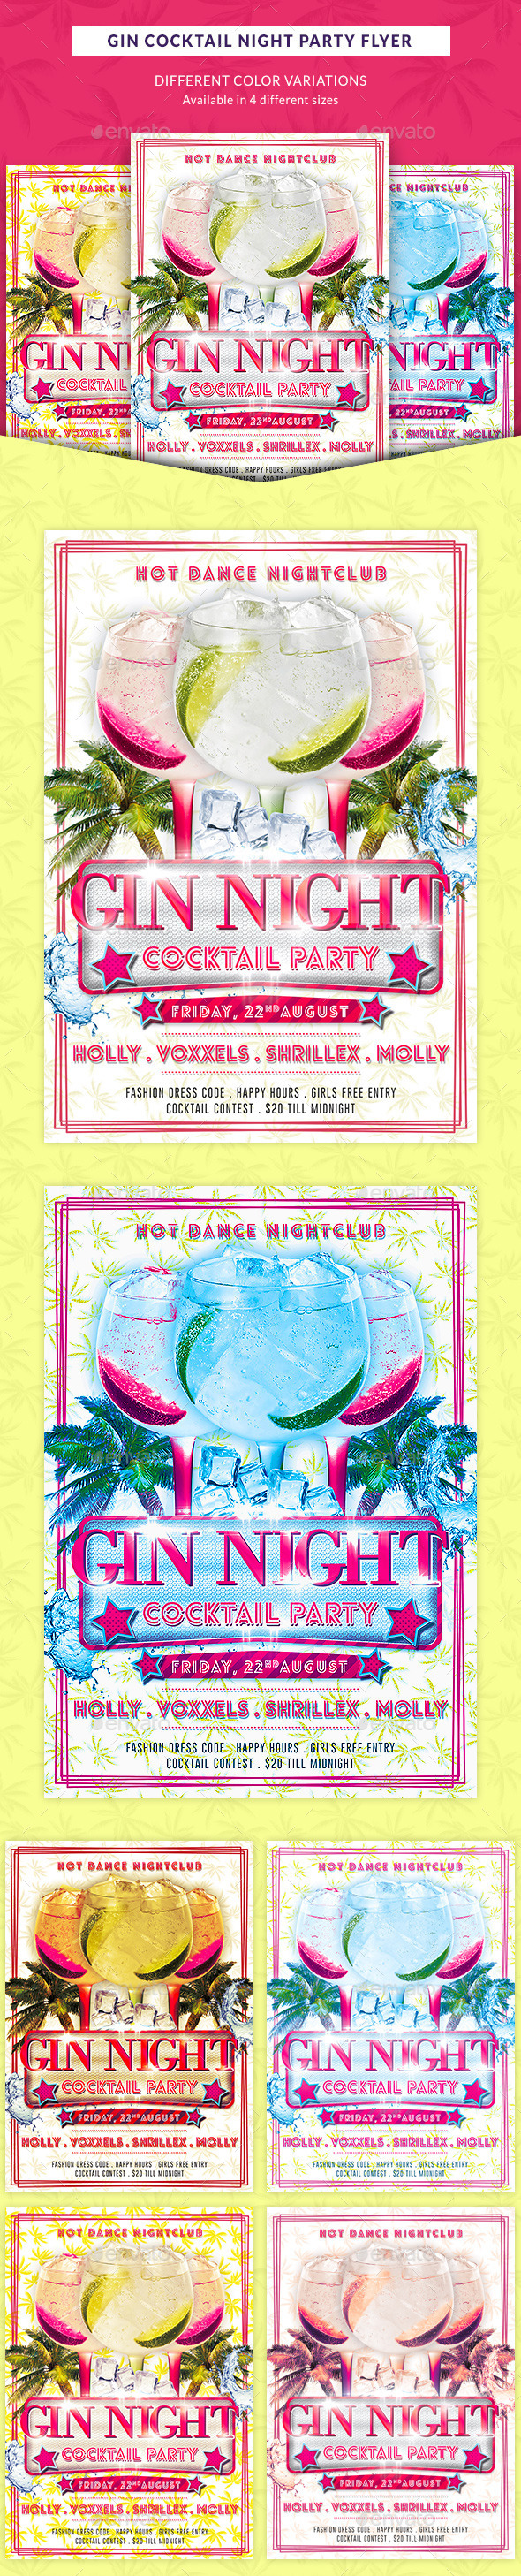 Gin Cocktail Nights Party Flyer - Clubs & Parties Events